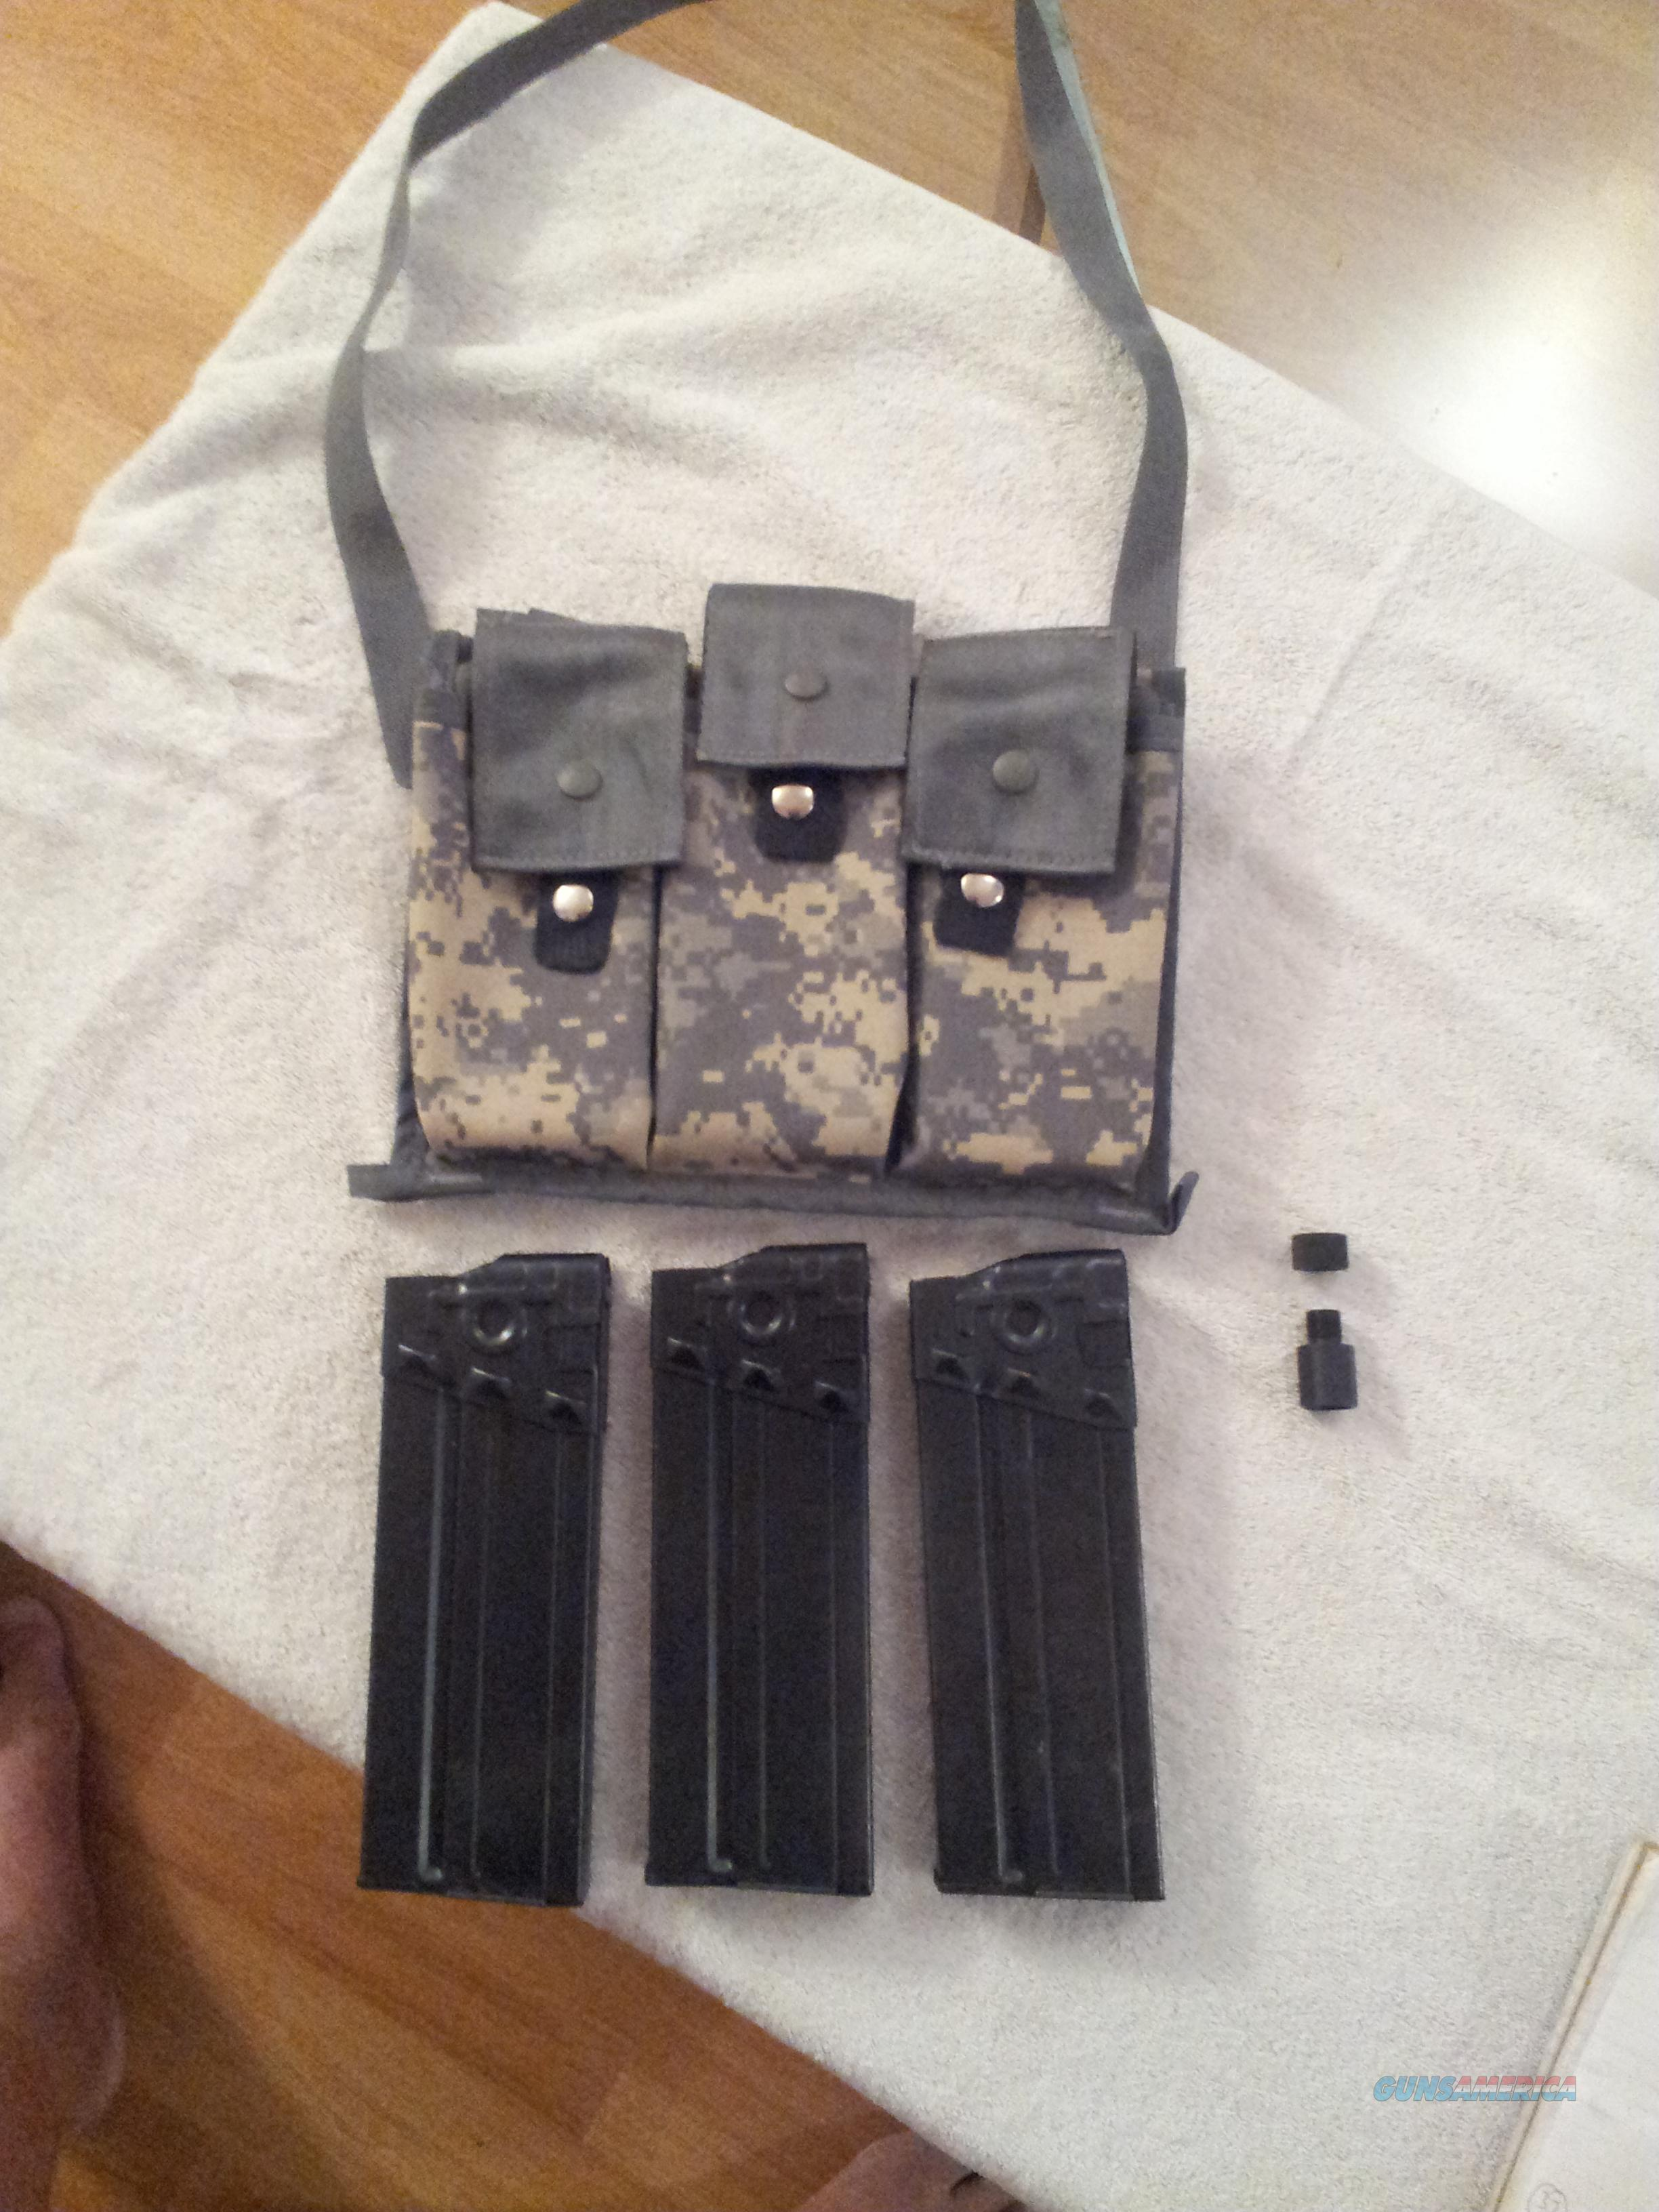 HK 91 51 G3 .308 30rd Magazine package deal  Non-Guns > Magazines & Clips > Rifle Magazines > HK/CETME